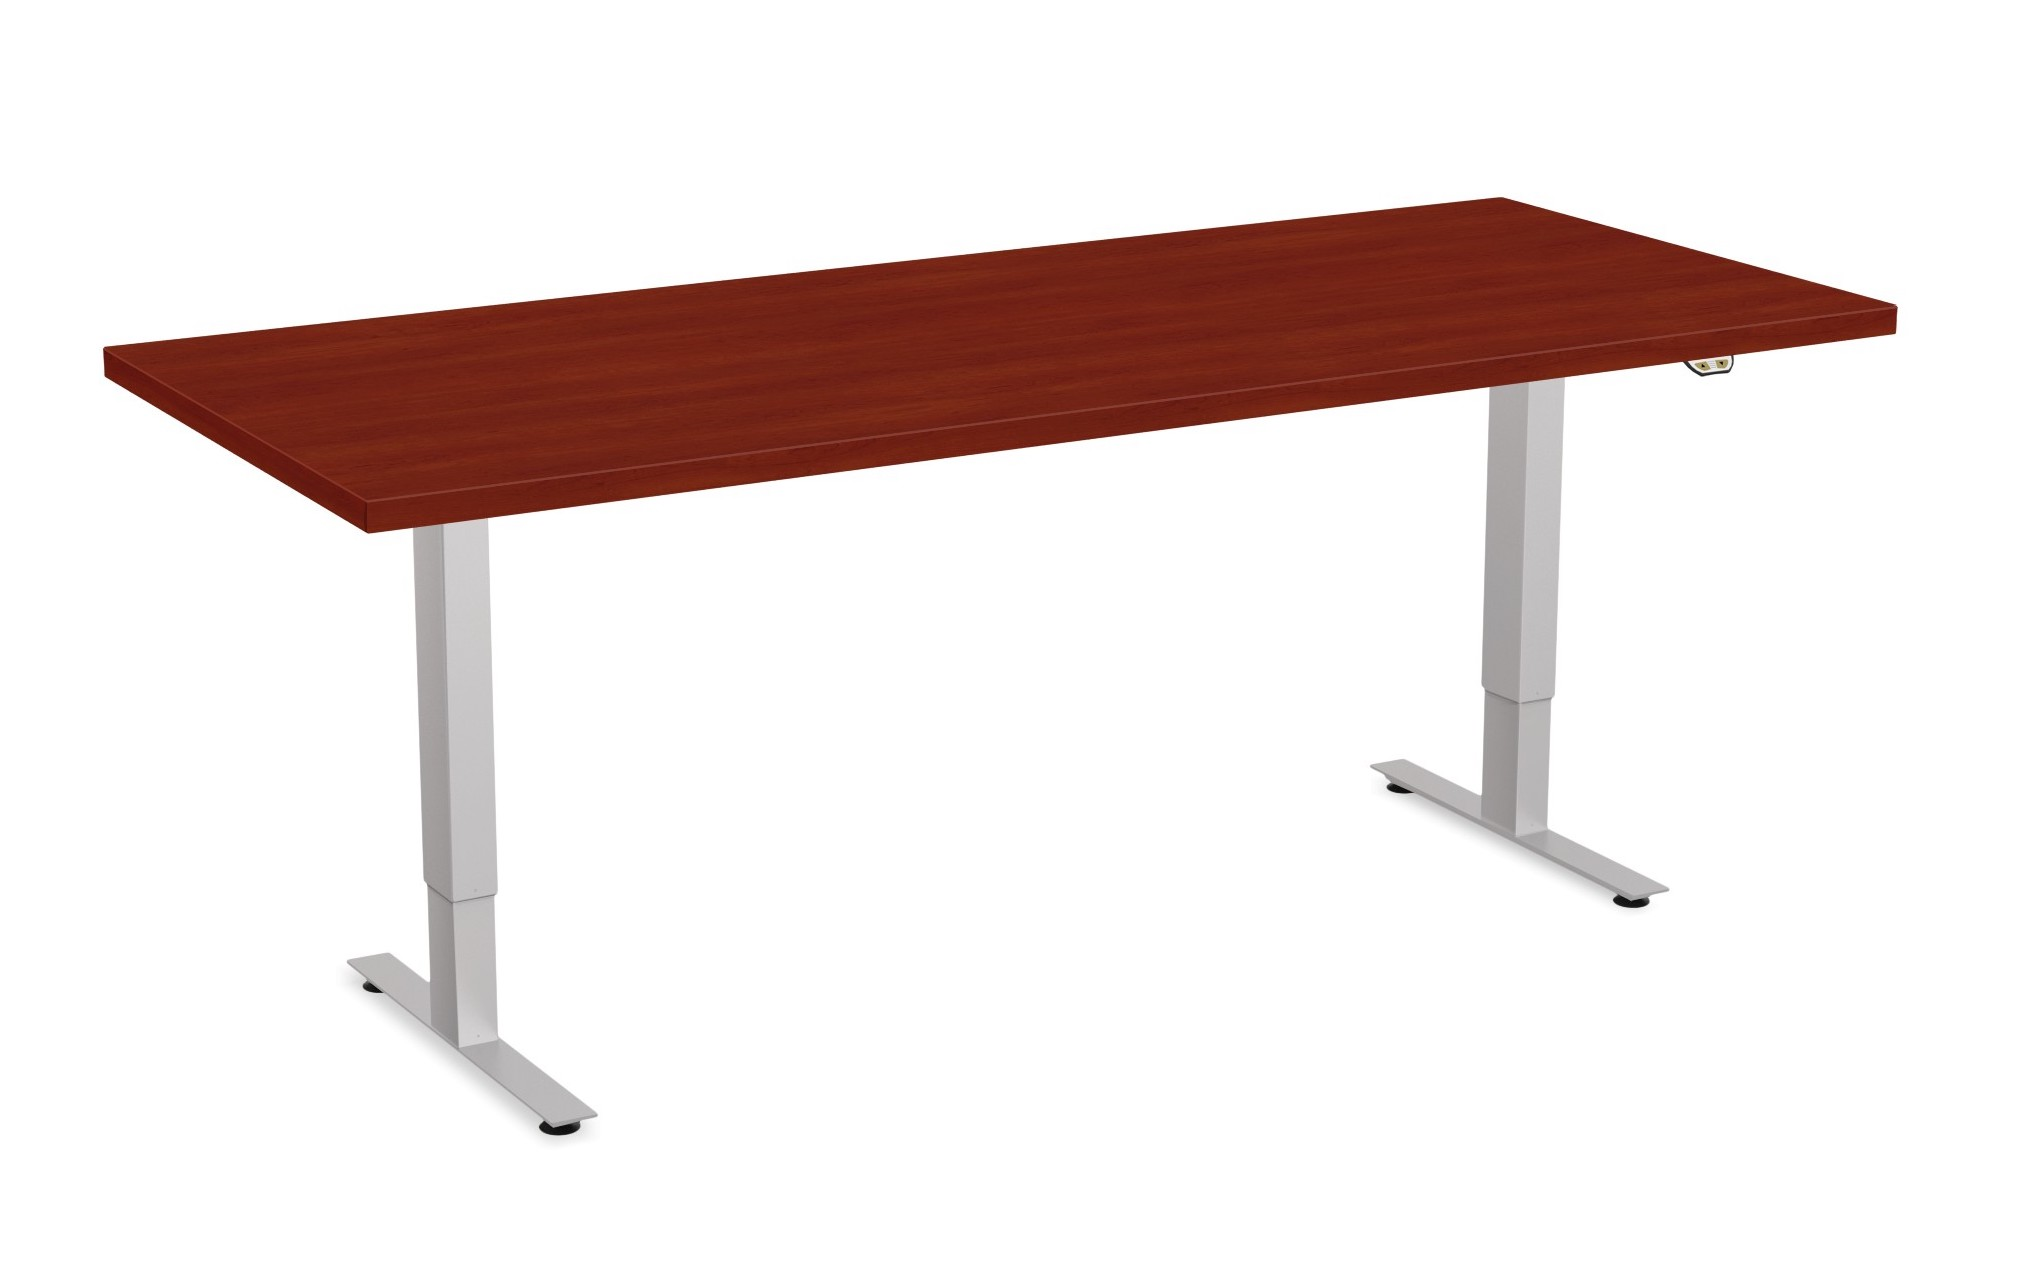 special-t patriot table in cherry